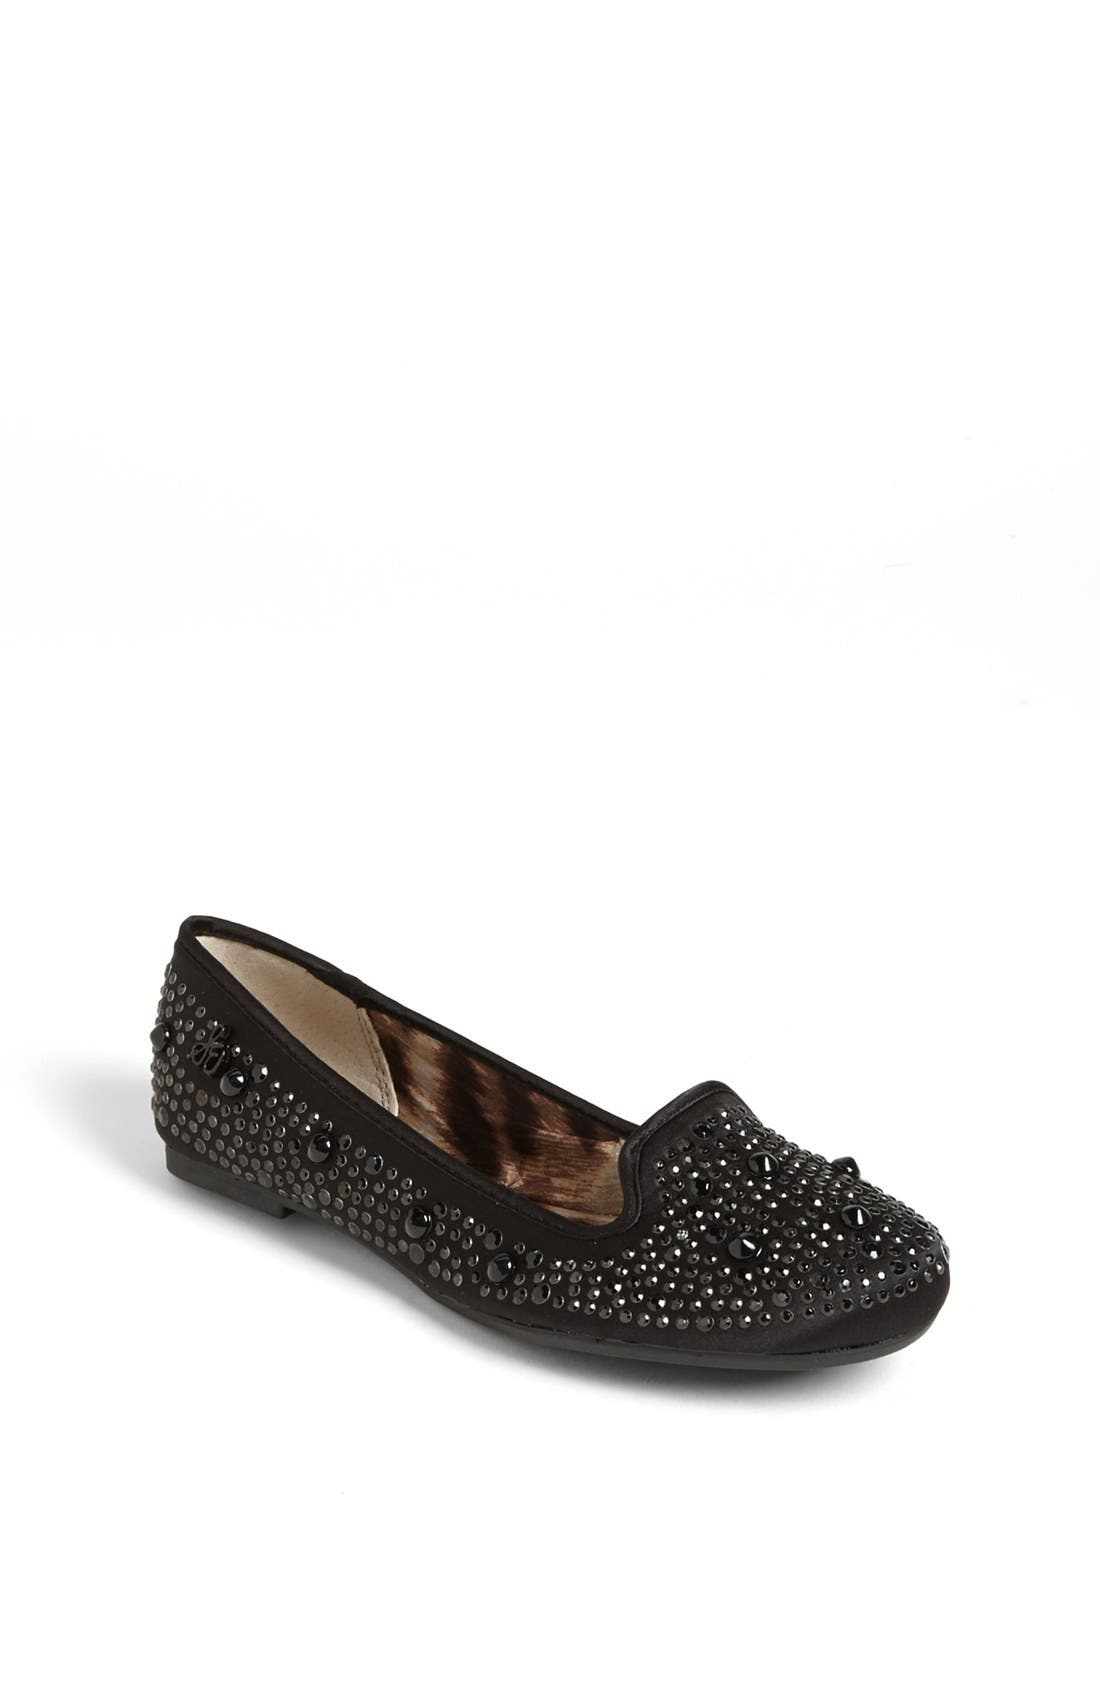 Alternate Image 1 Selected - Sam Edelman 'Adena' Flat (Toddler, Little Kid & Big Kid)